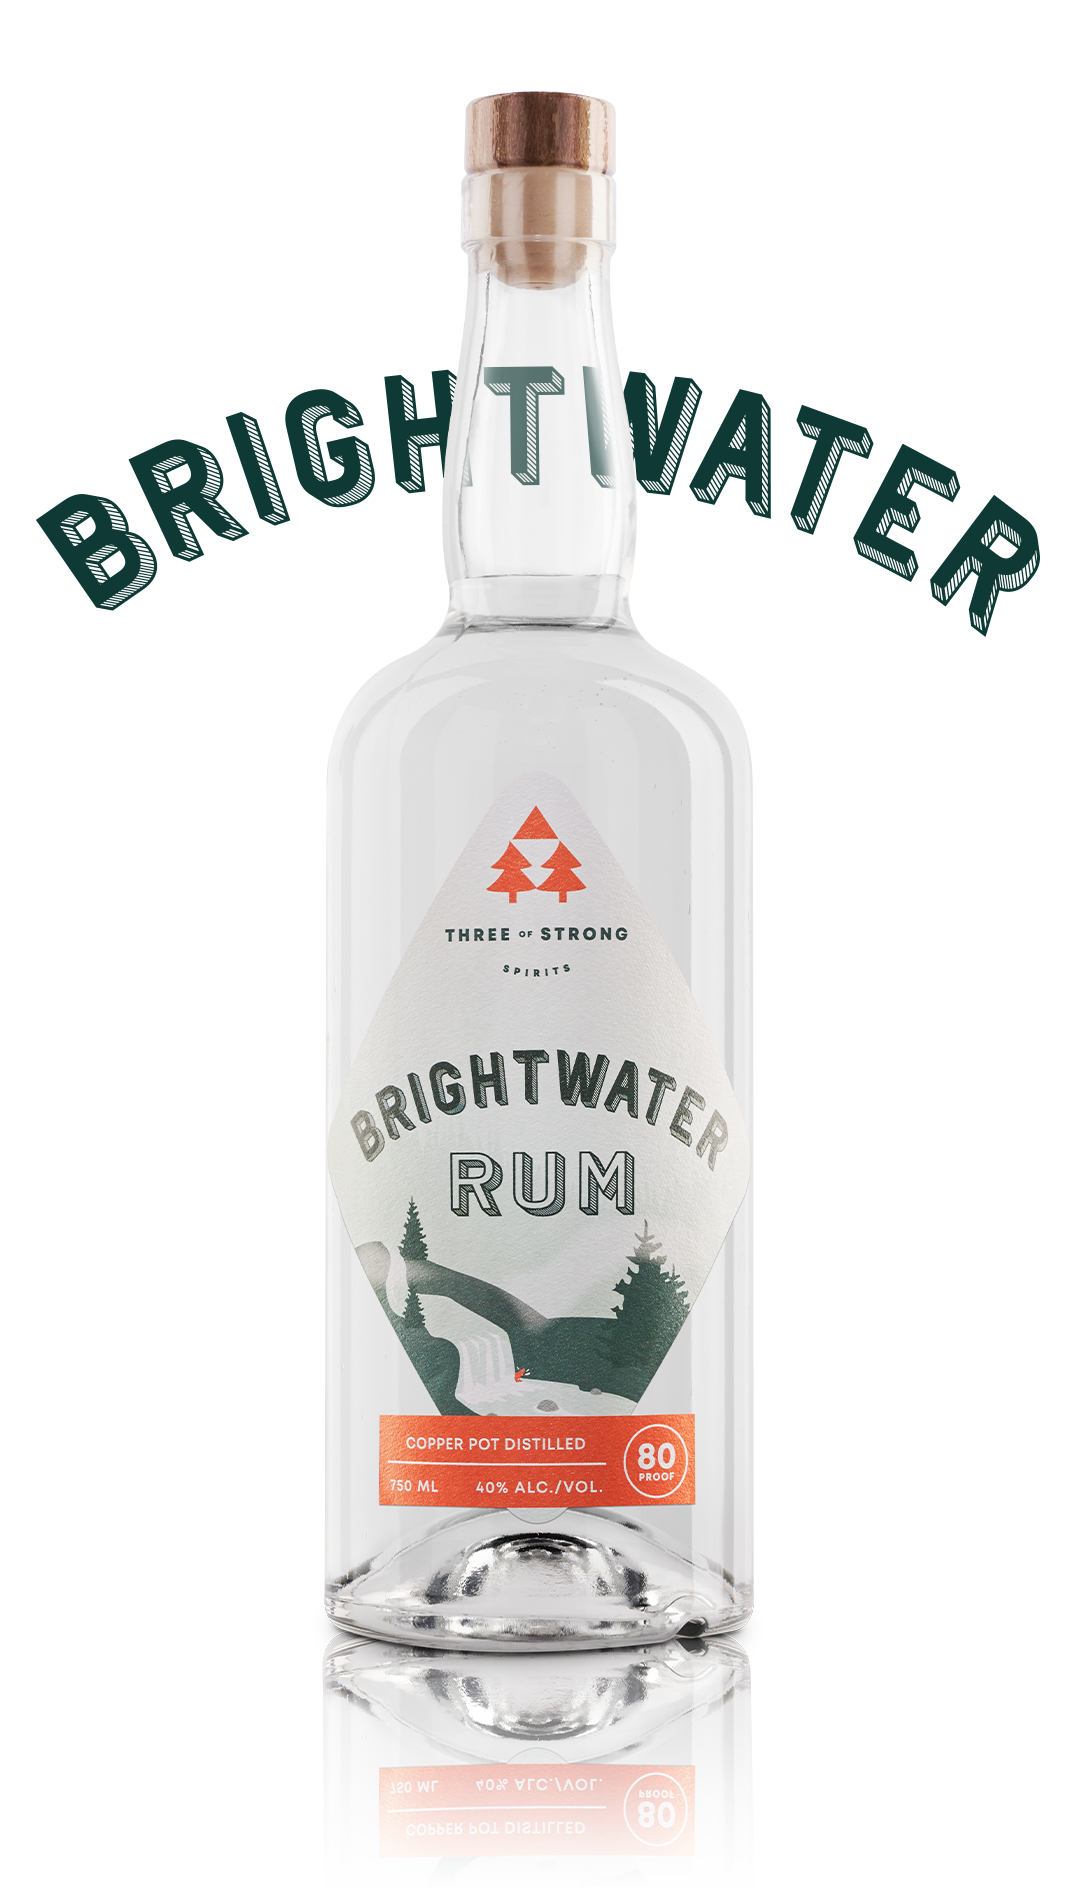 three of strong spirits, brightwater rum